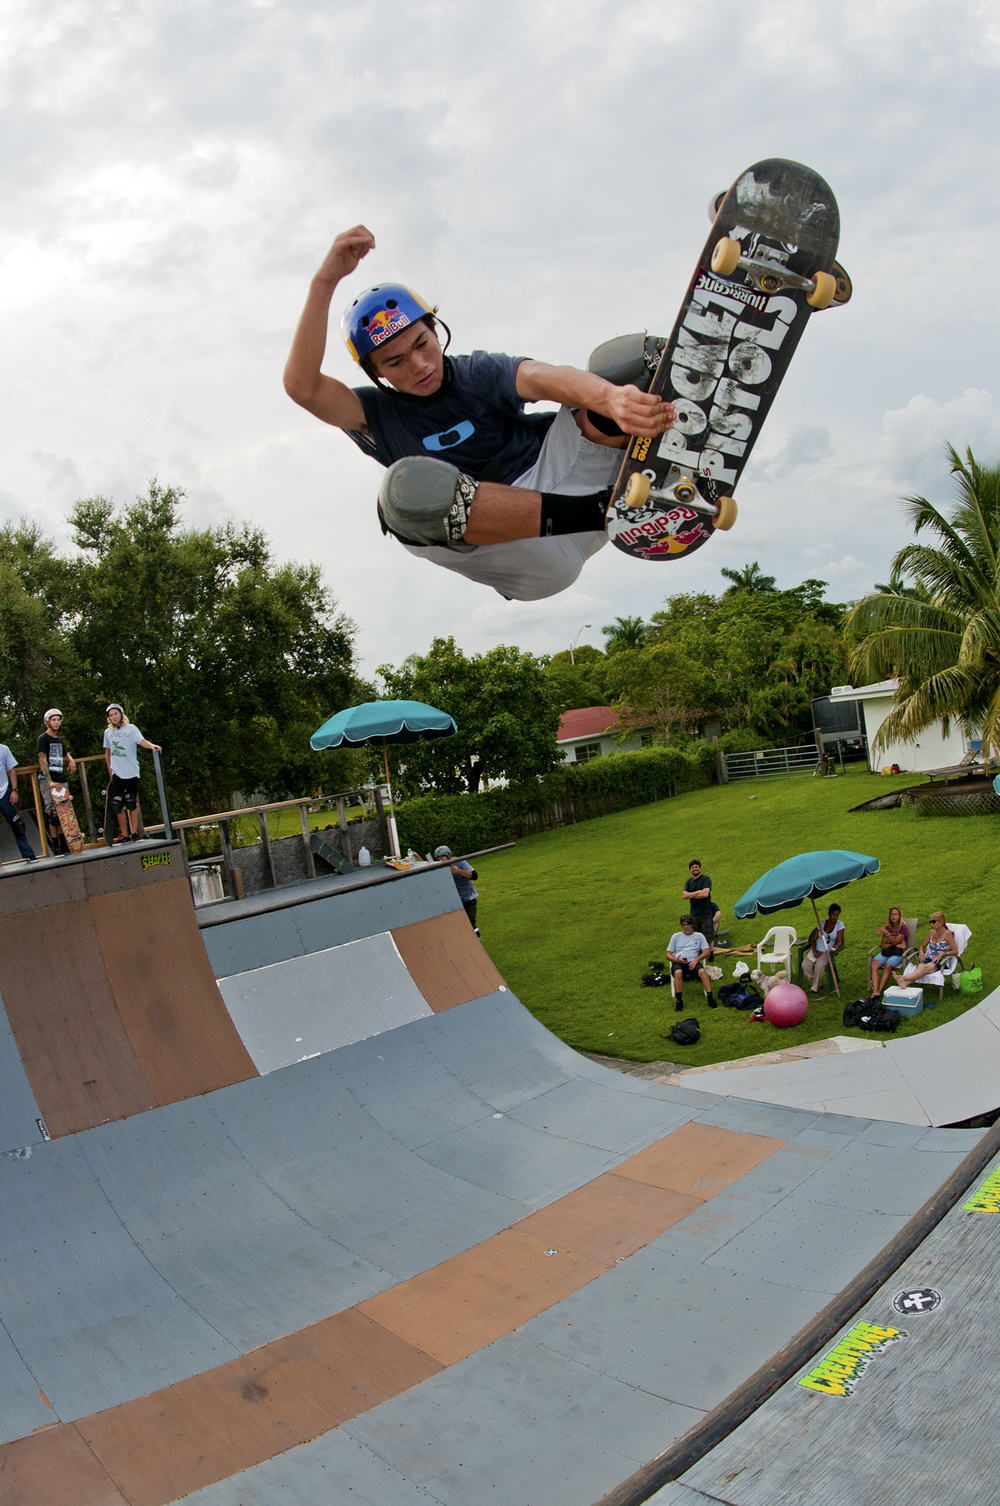 backyard session with alex sorgente and friends u2014 inaction